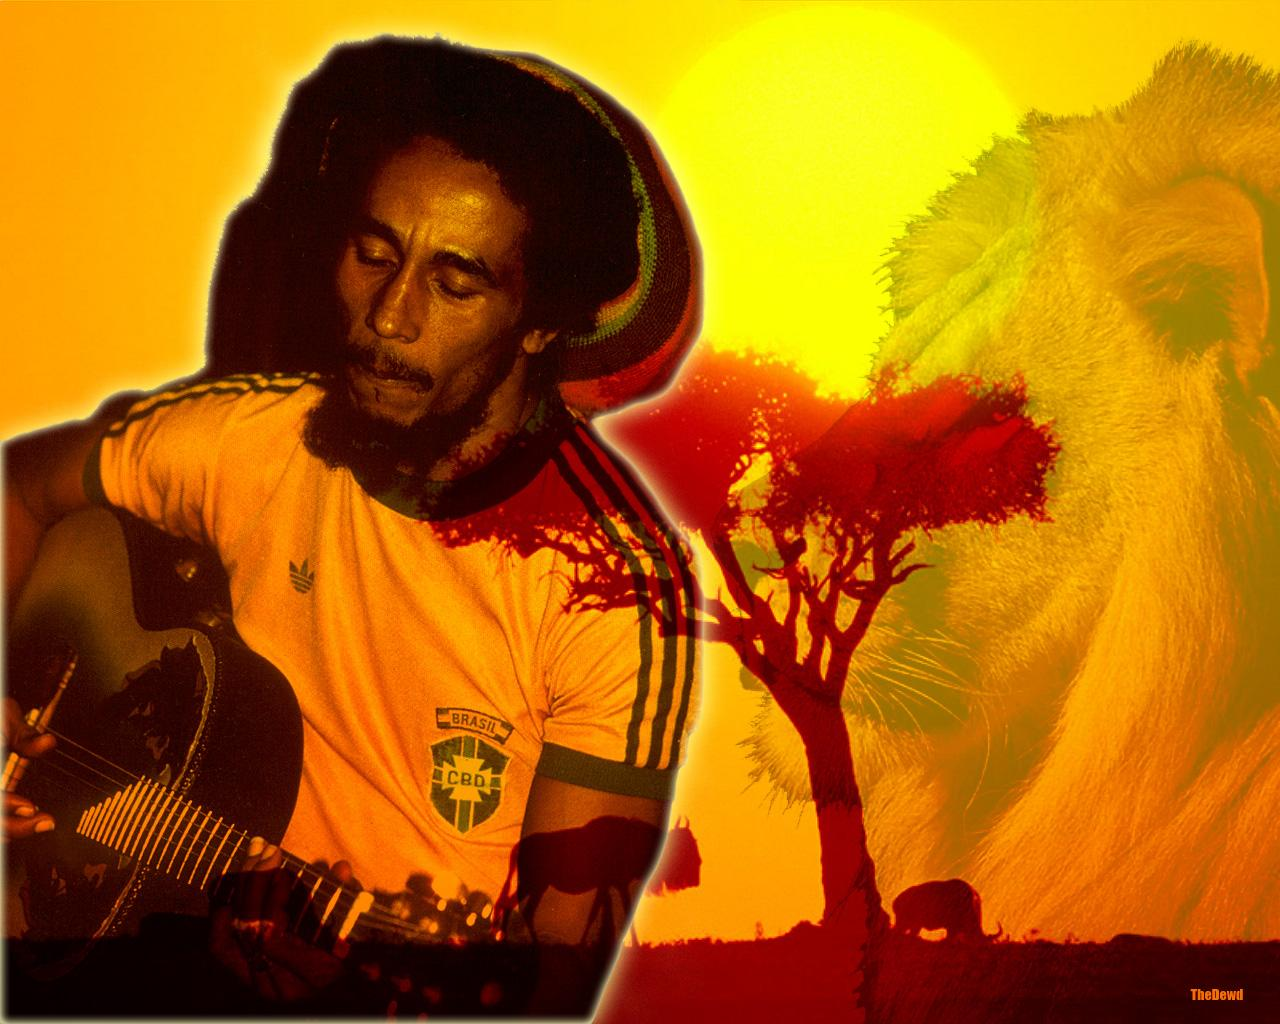 Bob marley Wallpapers. Photos, images, Bob marley pictures (15591)